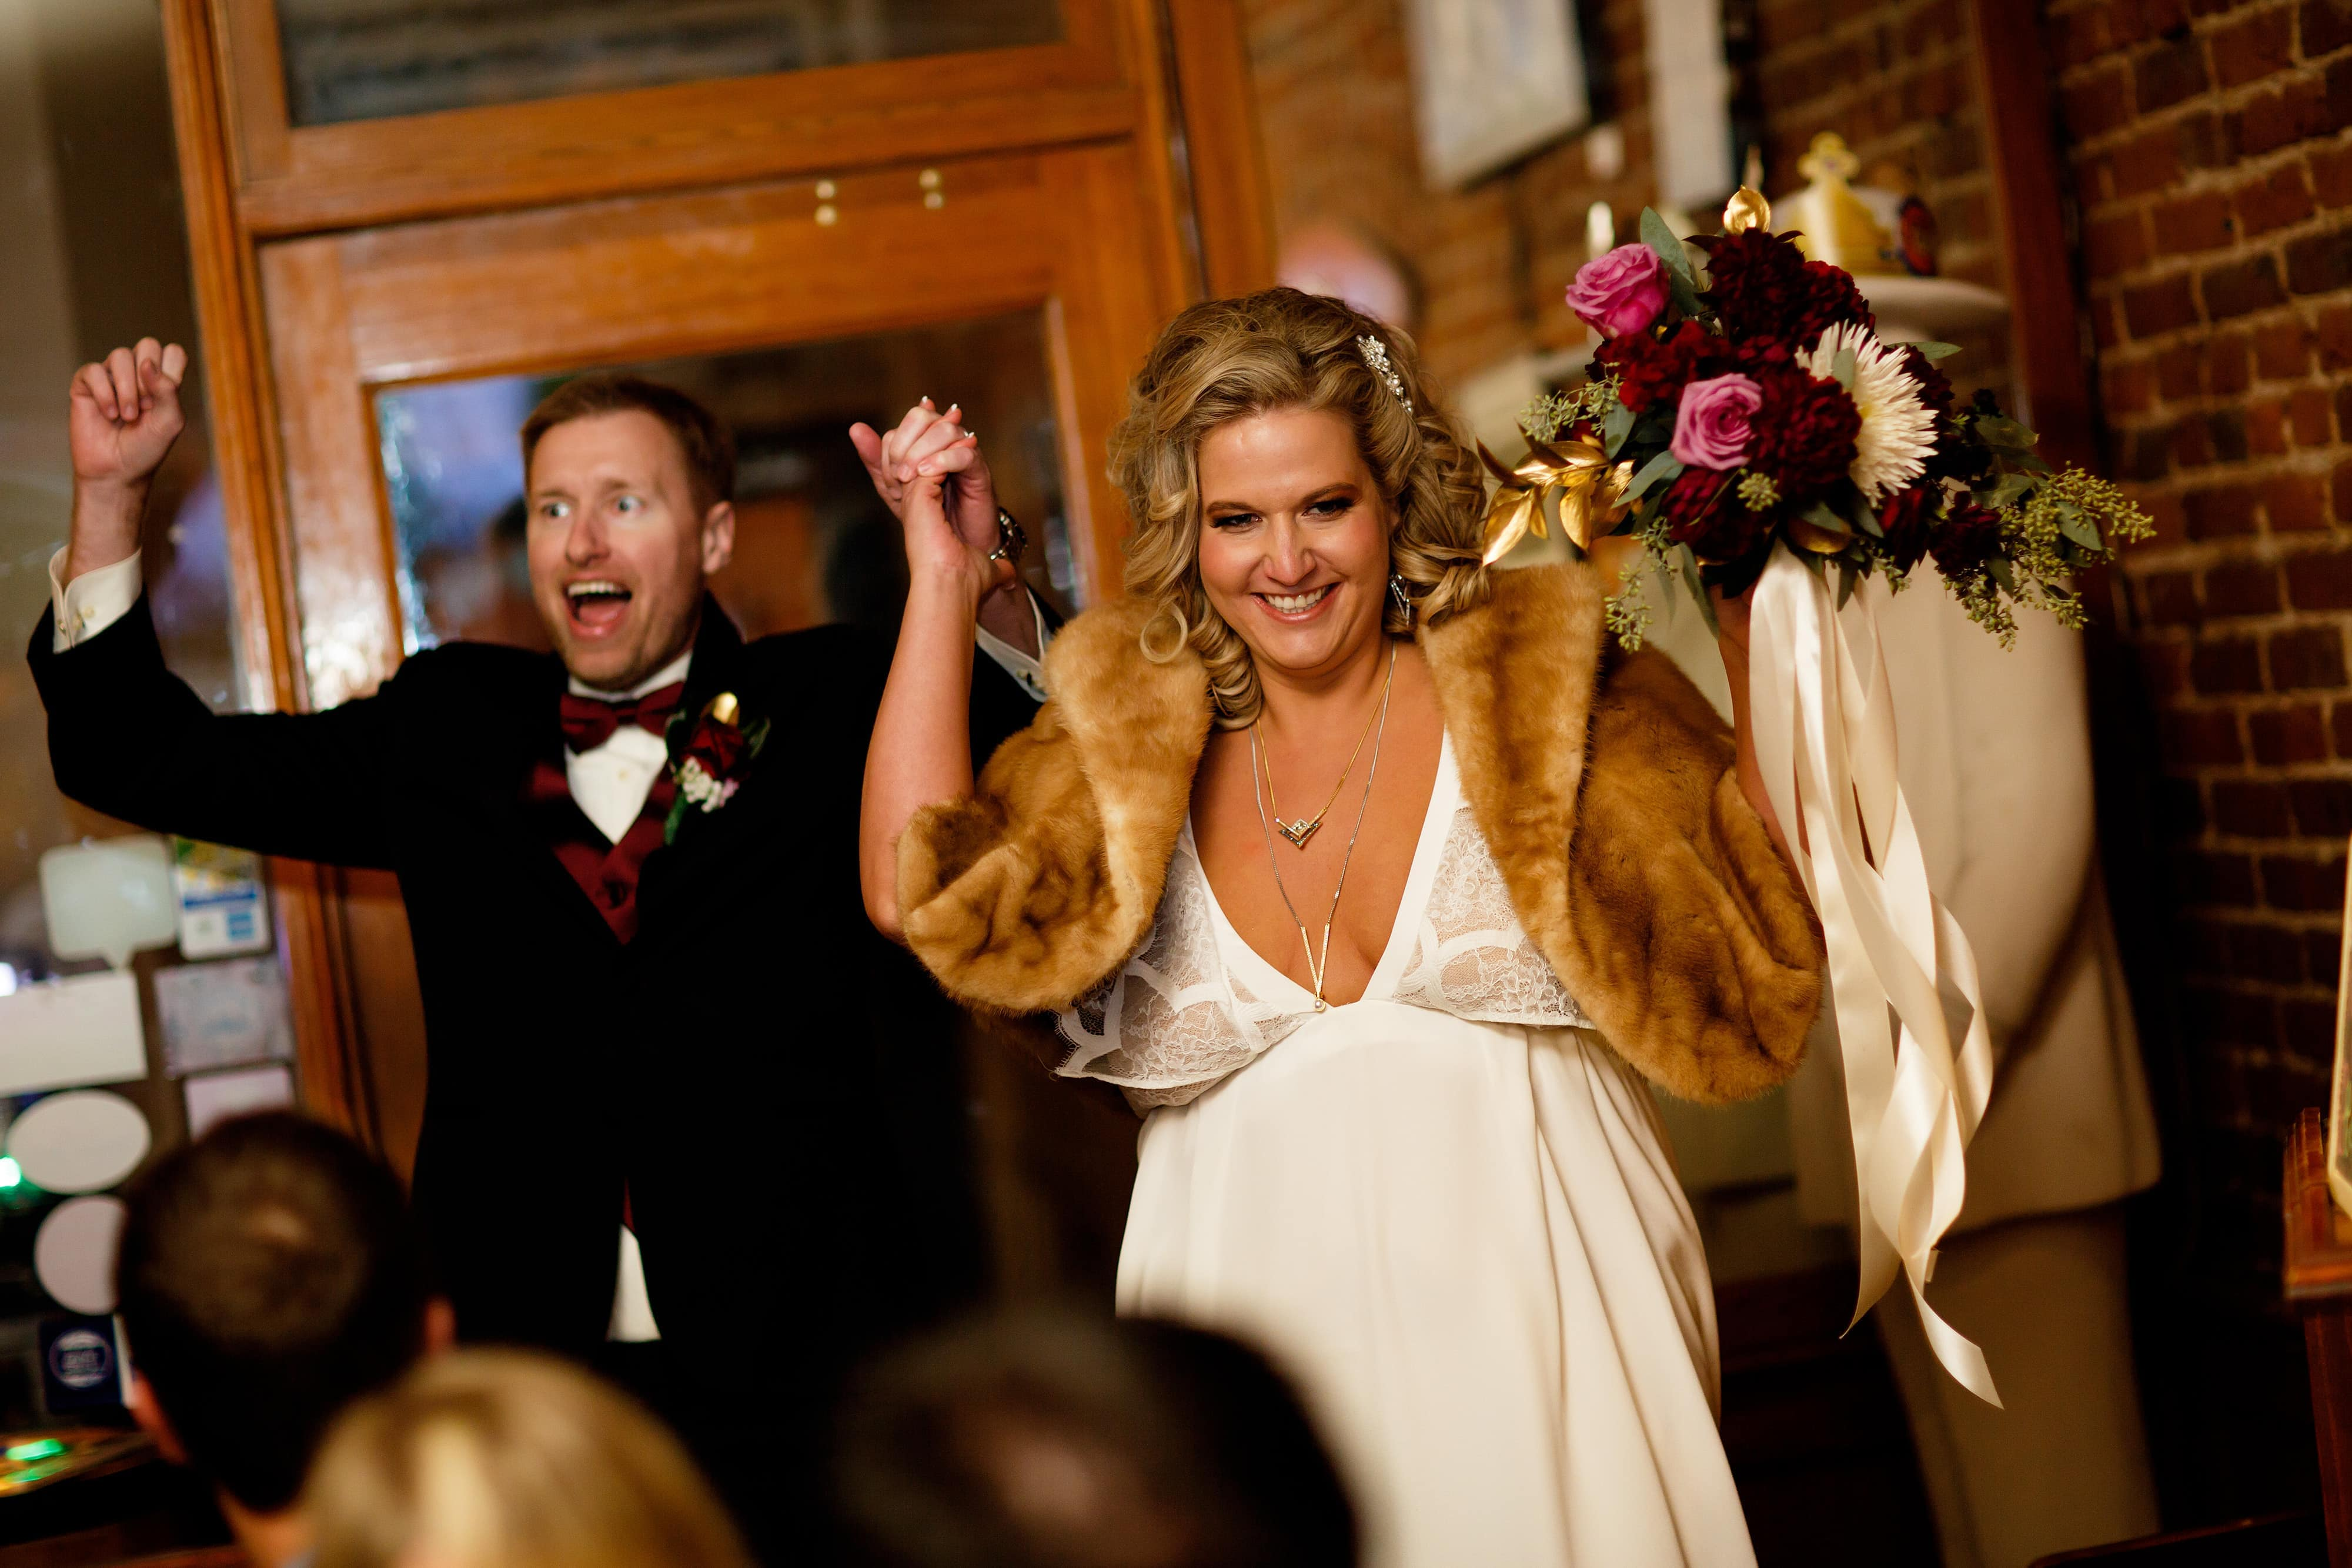 Sarah and Ryan celebrate as they are introduced for the first time at The Lobby for their wedding reception